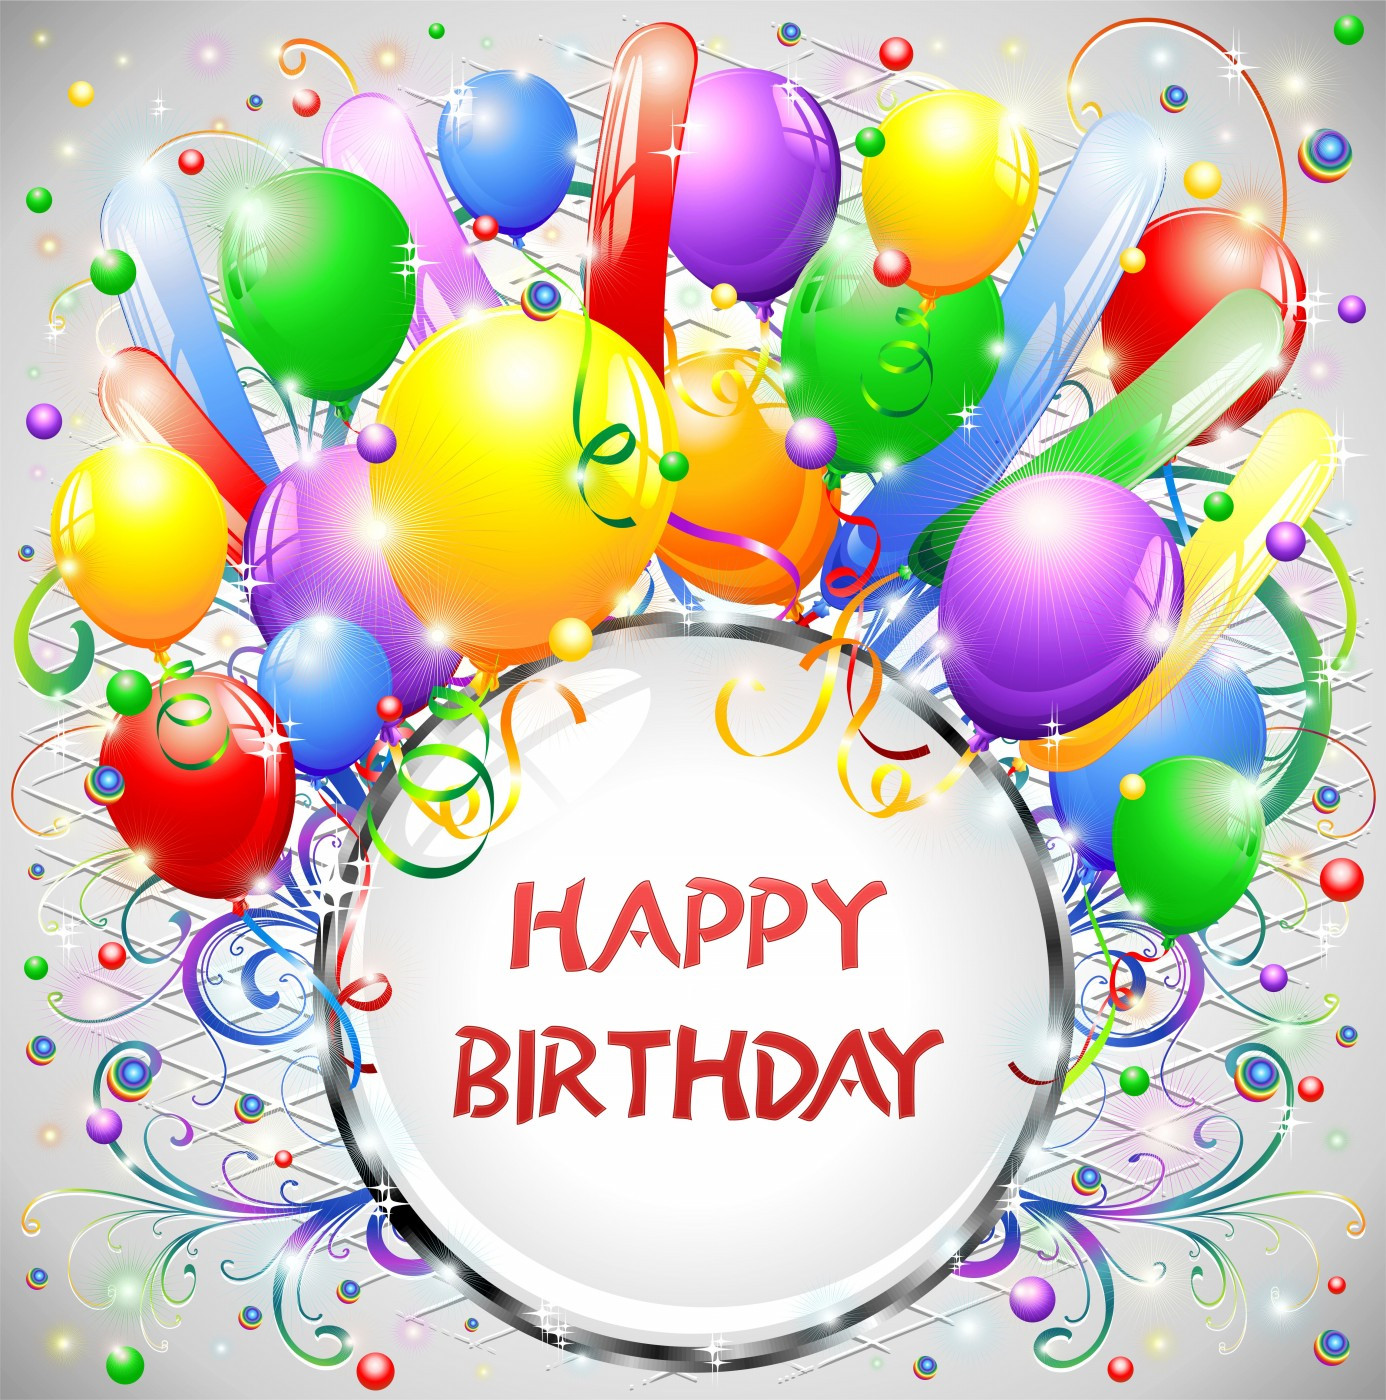 Best ideas about Free Happy Birthday Wishes . Save or Pin happy birthday card message Now.